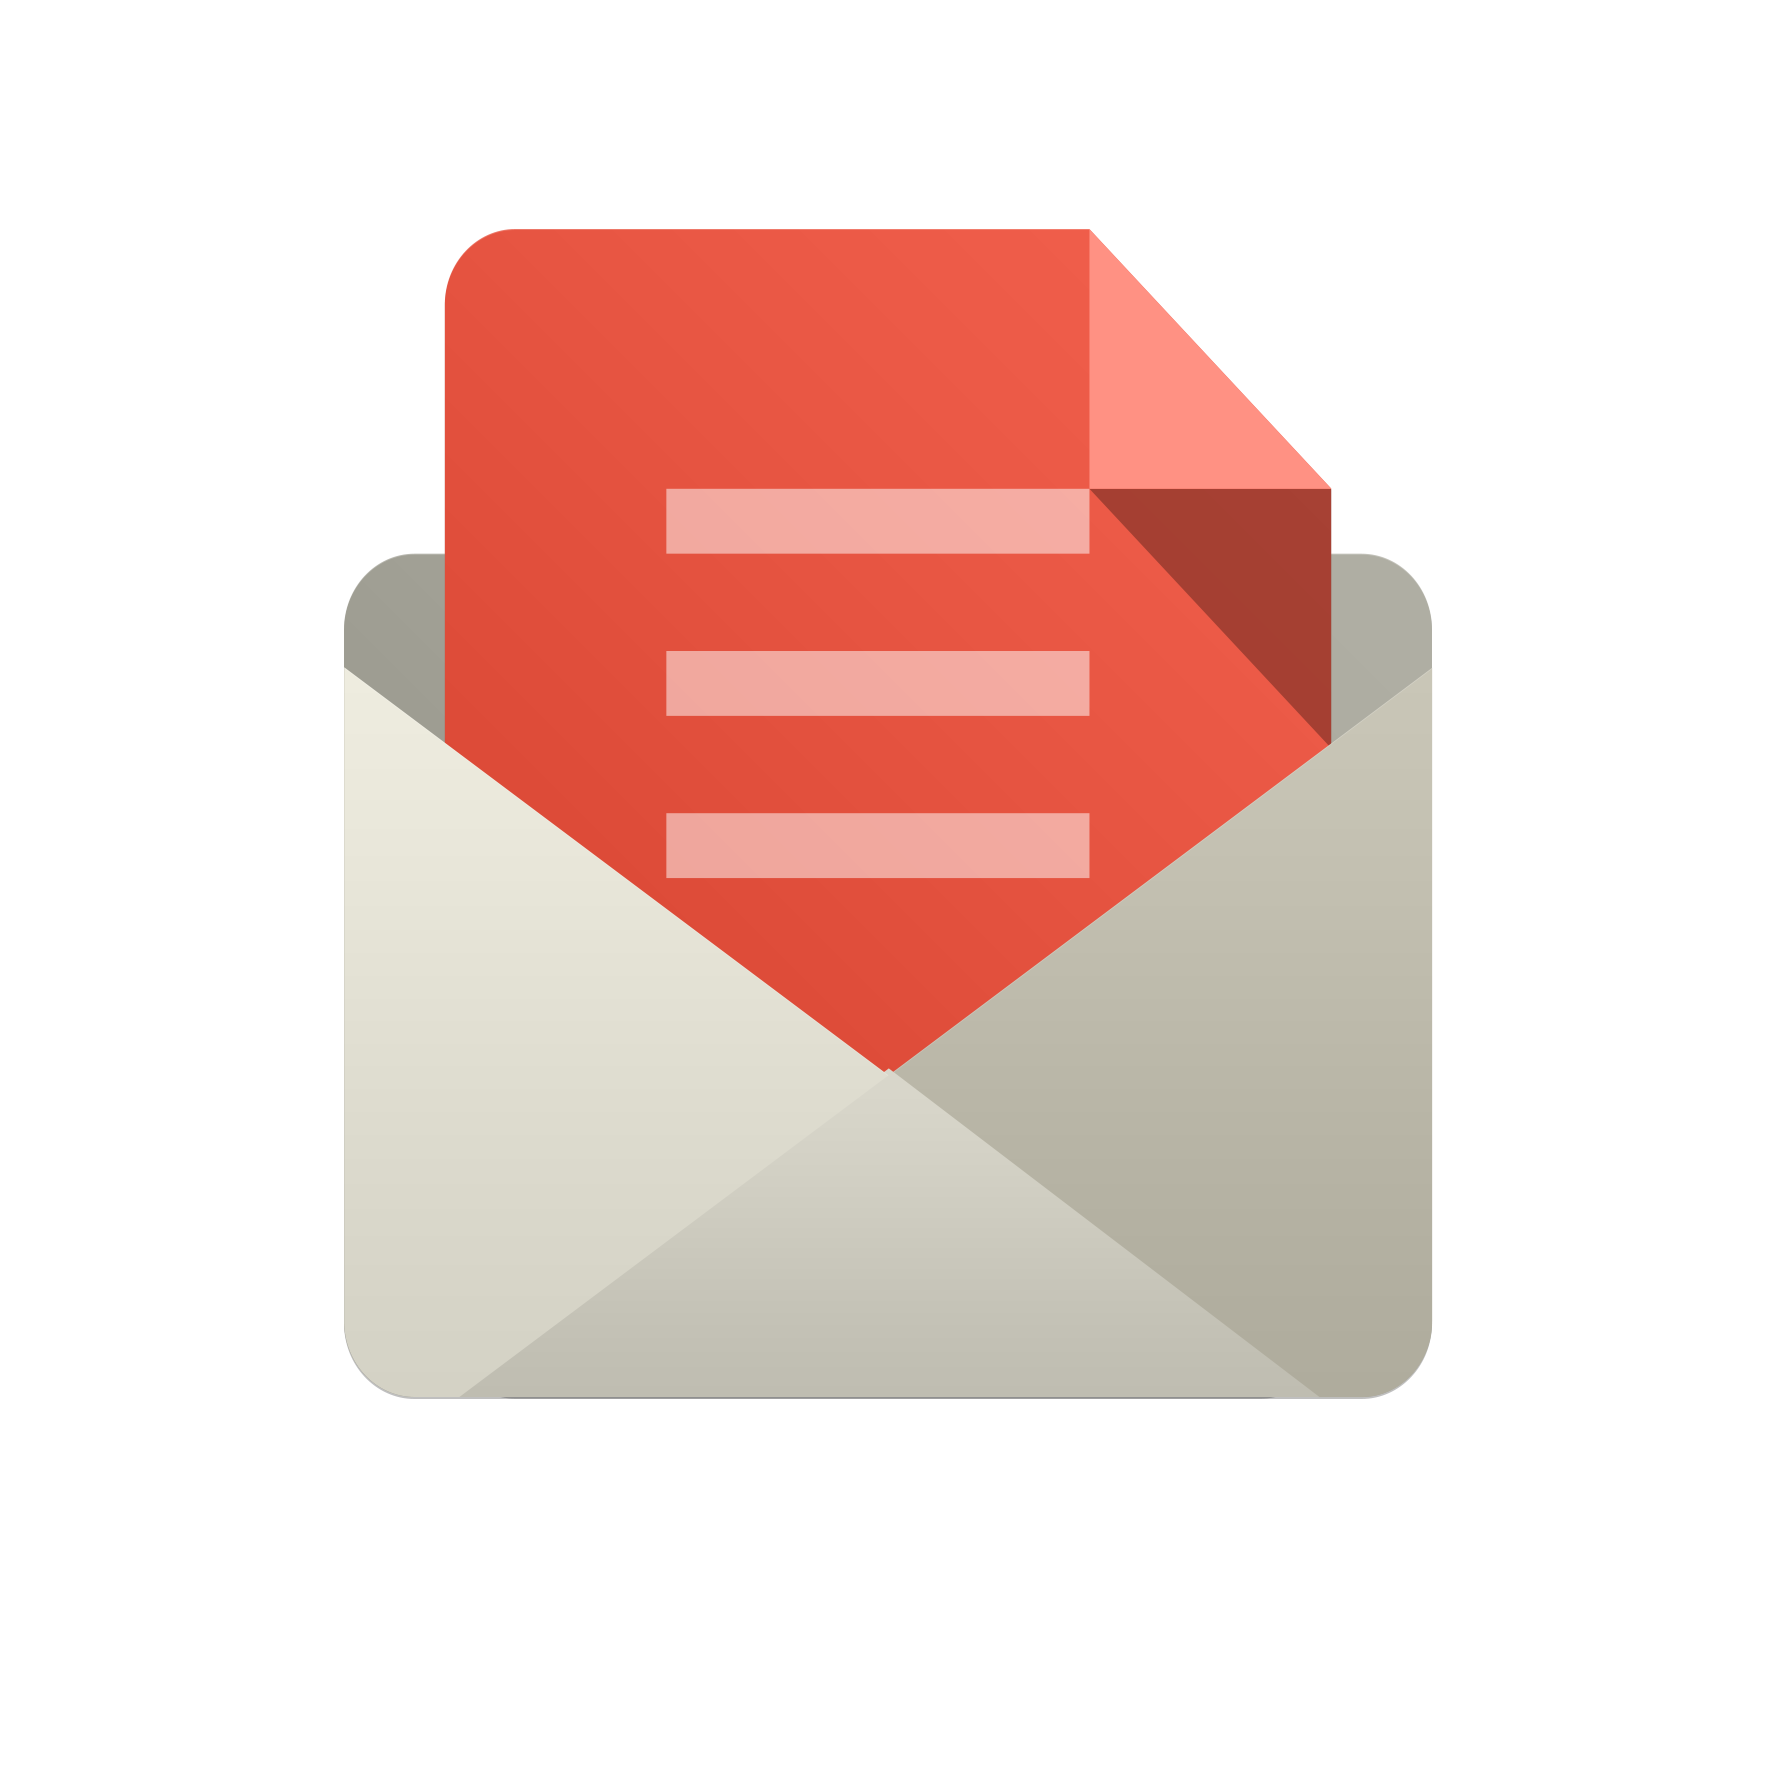 Info Phone Animation Gmail Email Icon PNG Image